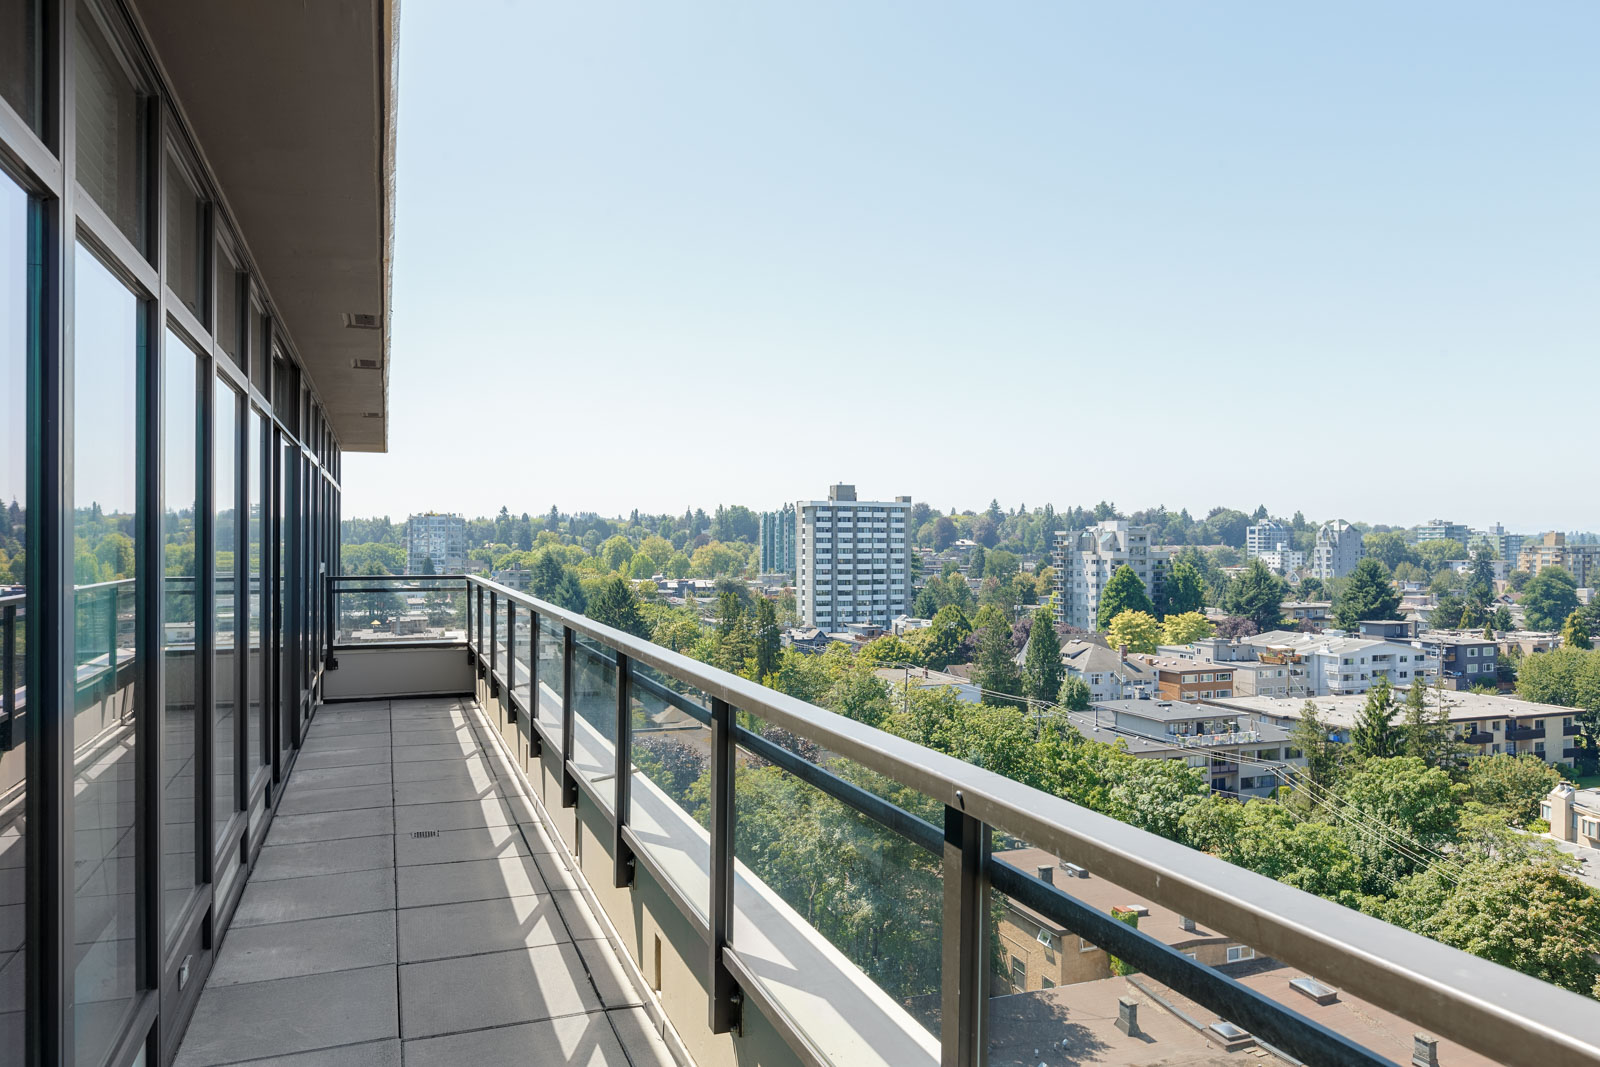 View from private balcony of Vancouver luxury penthouse managed by Birds Nest Properties.